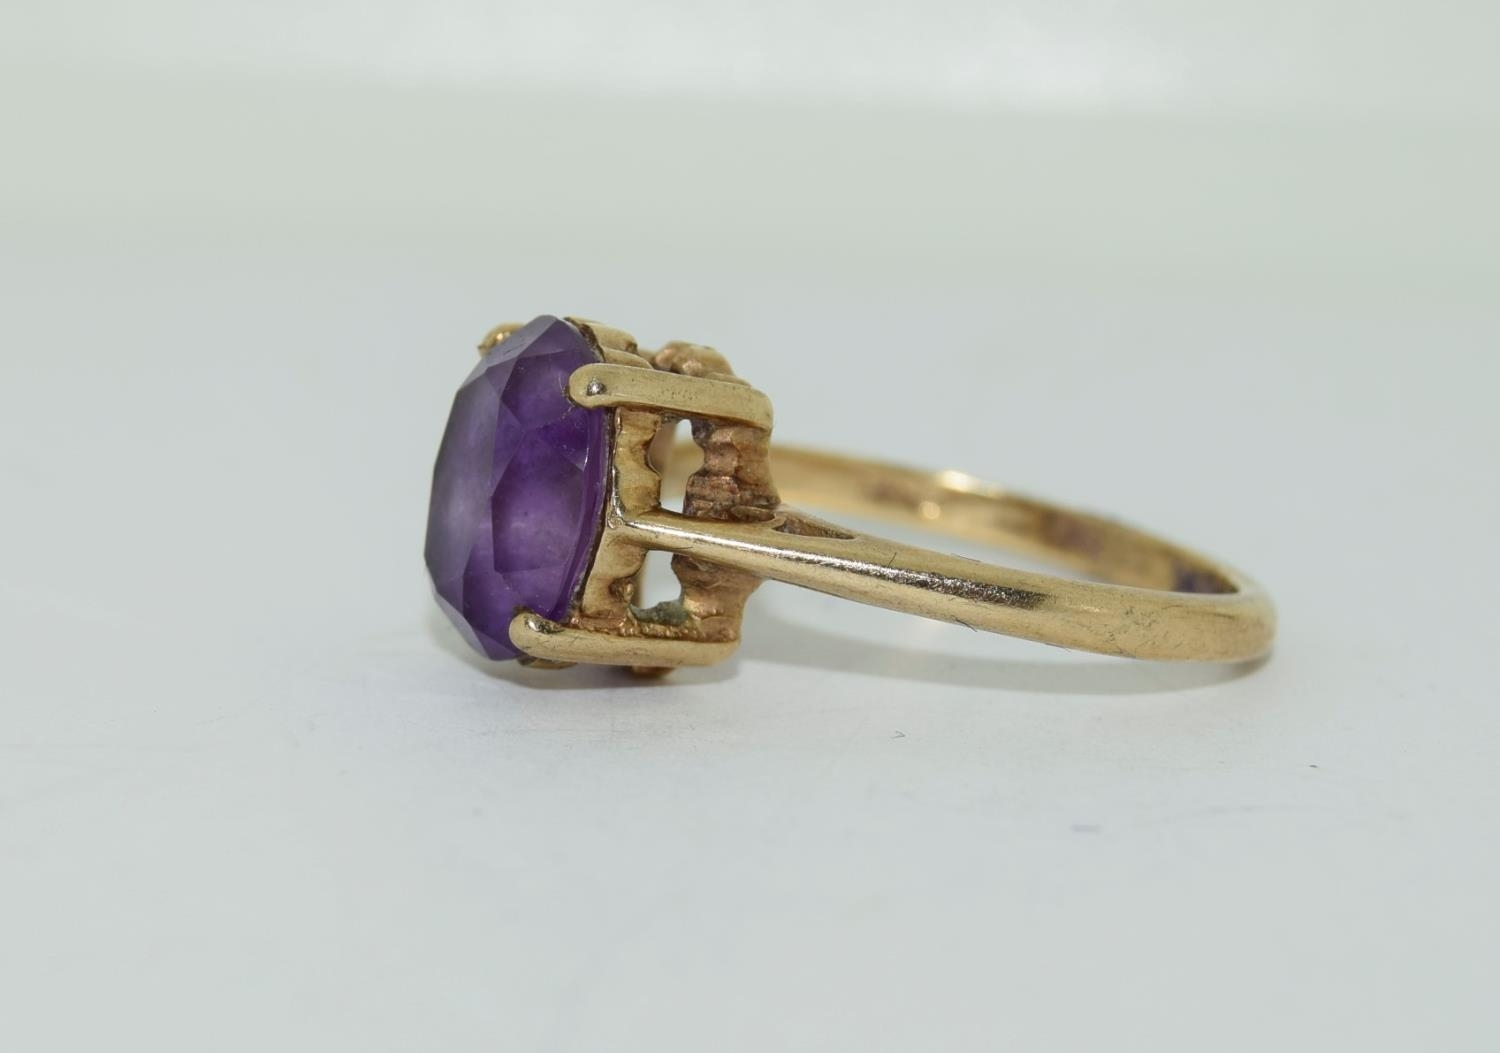 9ct gold ladies Amethyst ring size N - Image 7 of 12